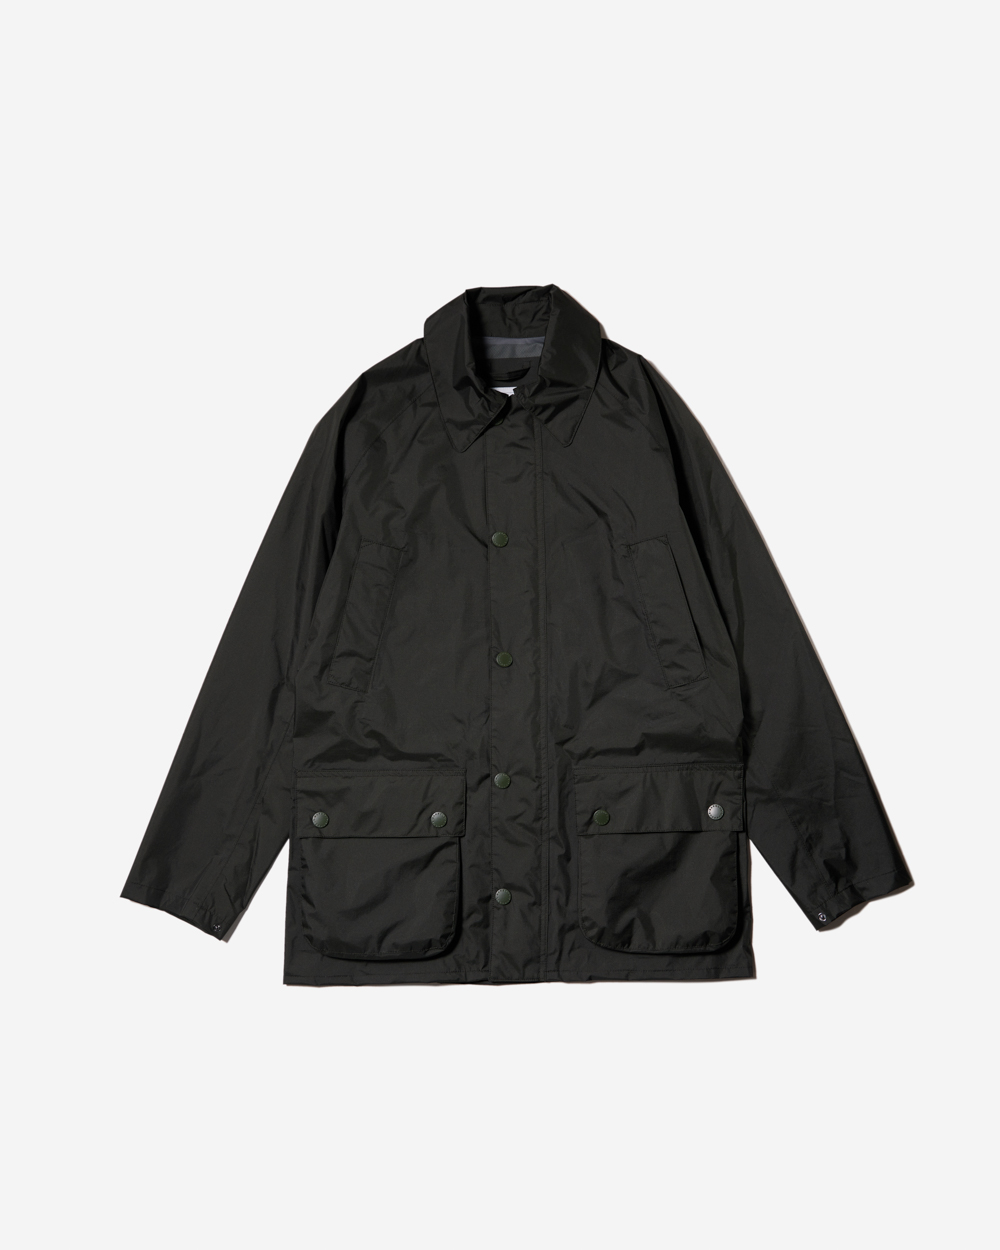 Barbour White Label